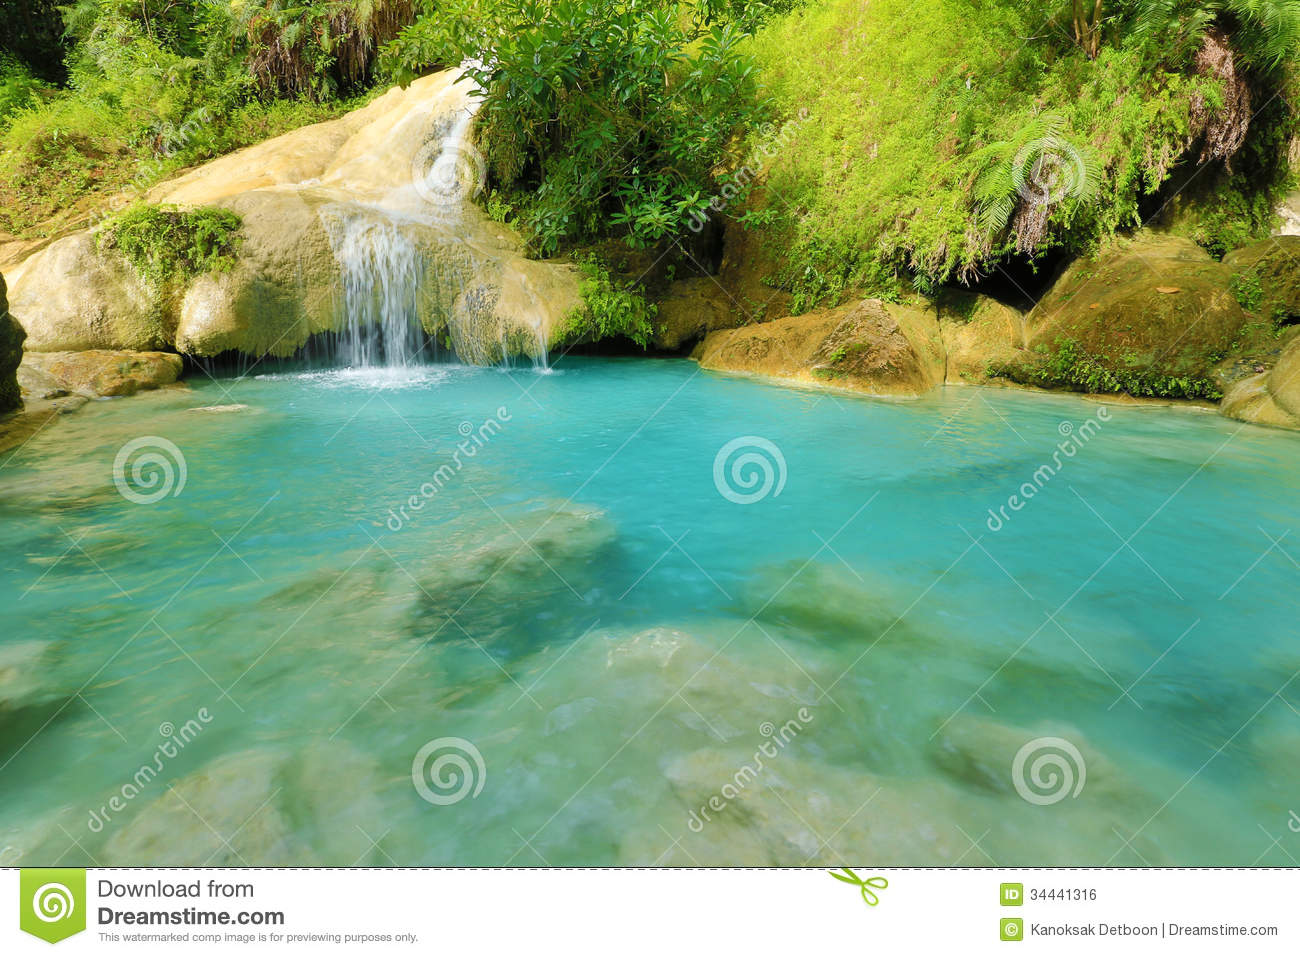 Beautiful waterfall in thailand s erawan waterfalls national park - Waterfall In Forest Download Free Stock Image Male